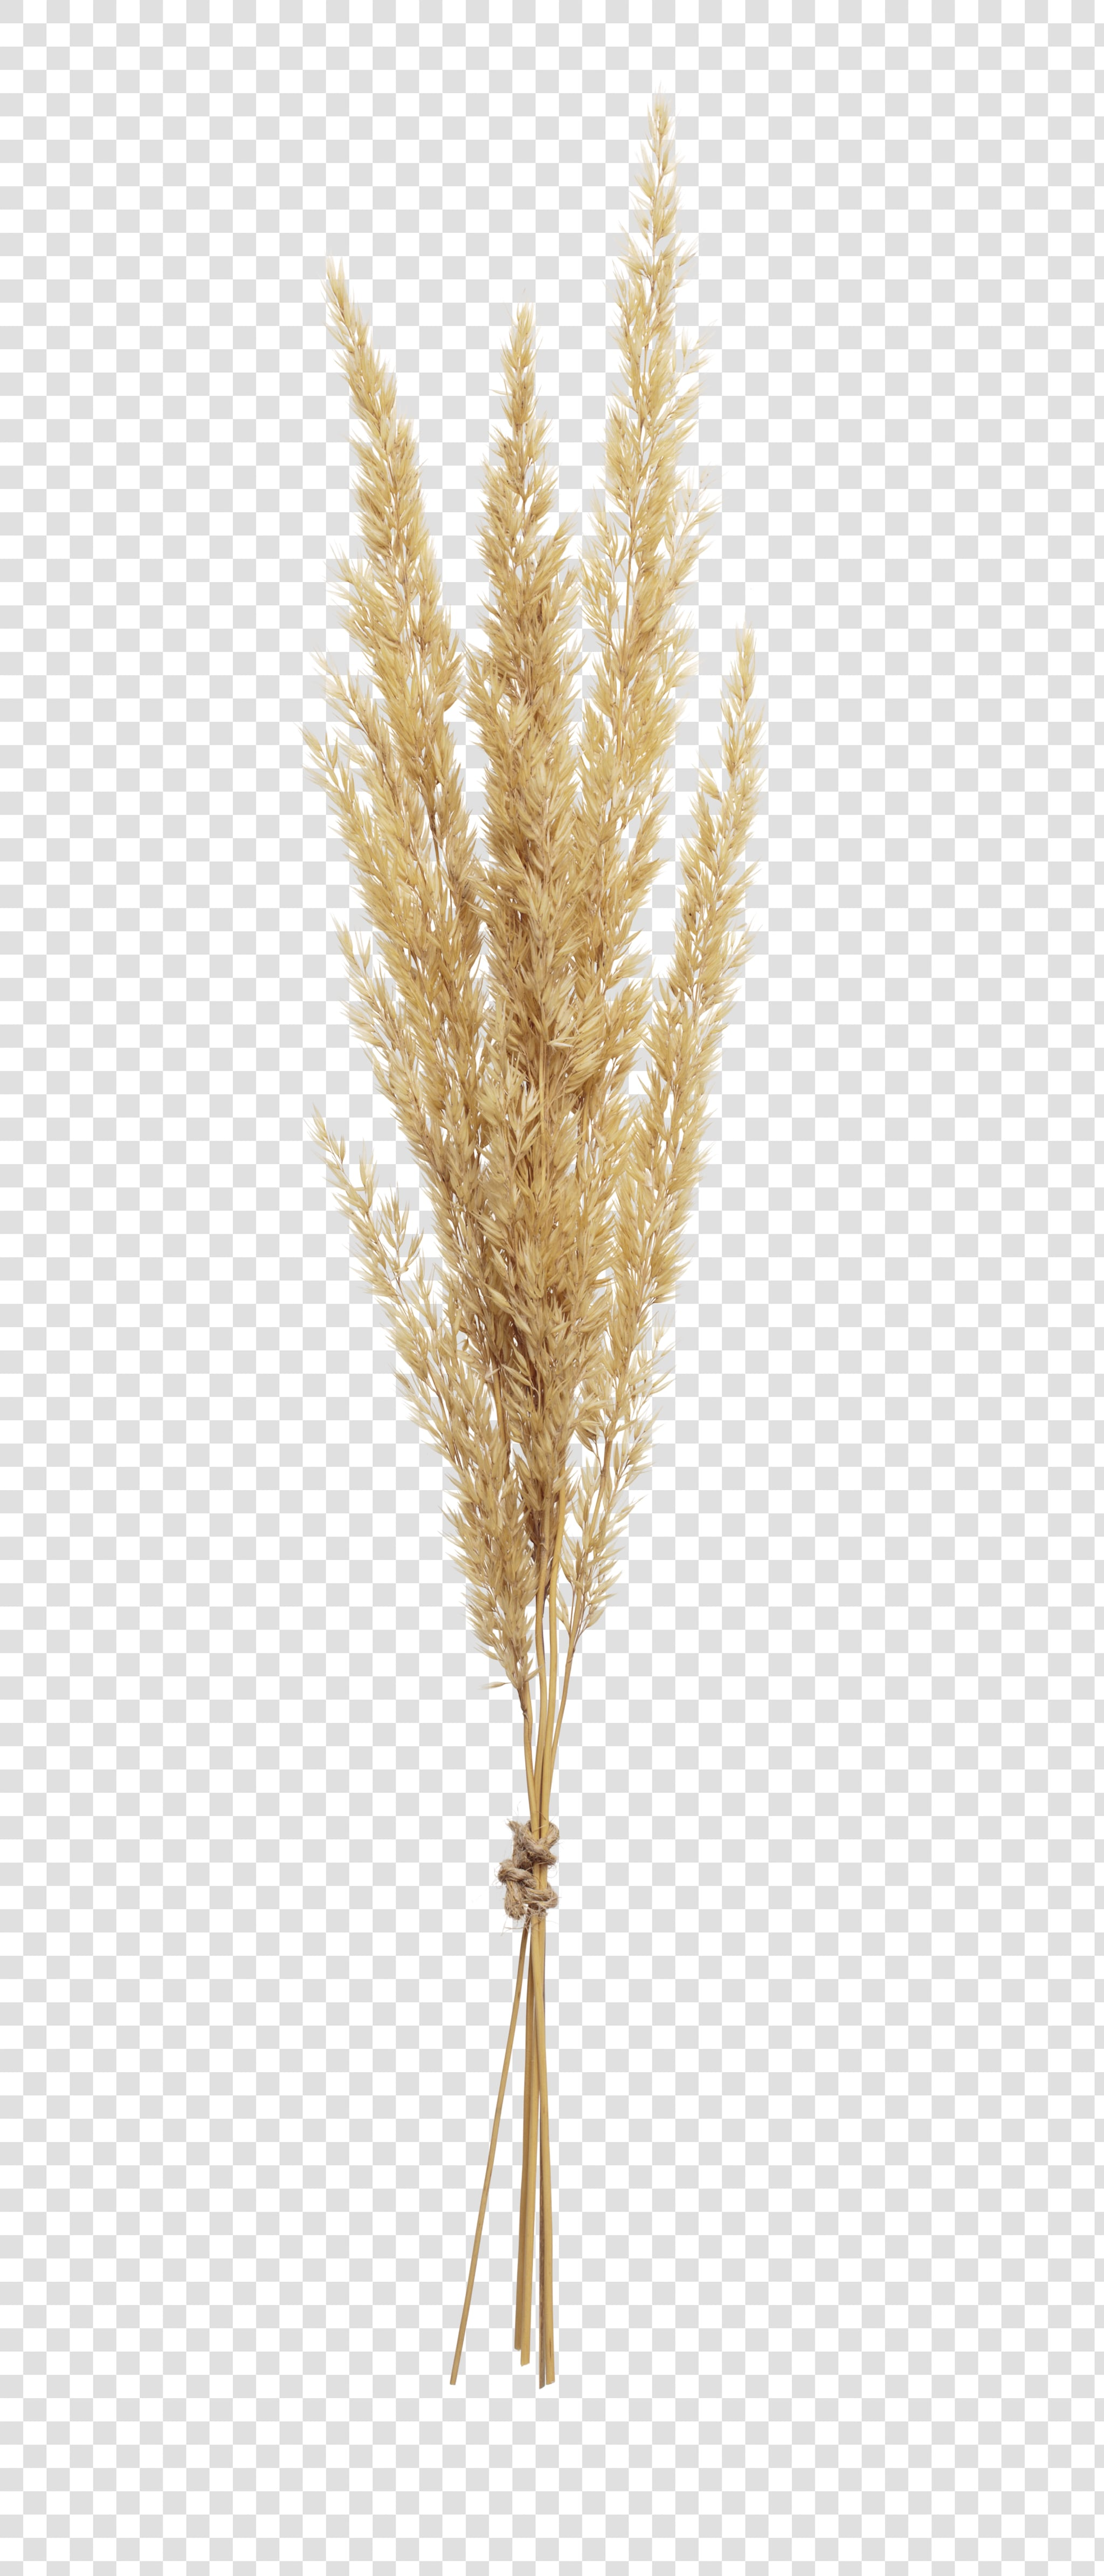 Spikelet image with transparent background